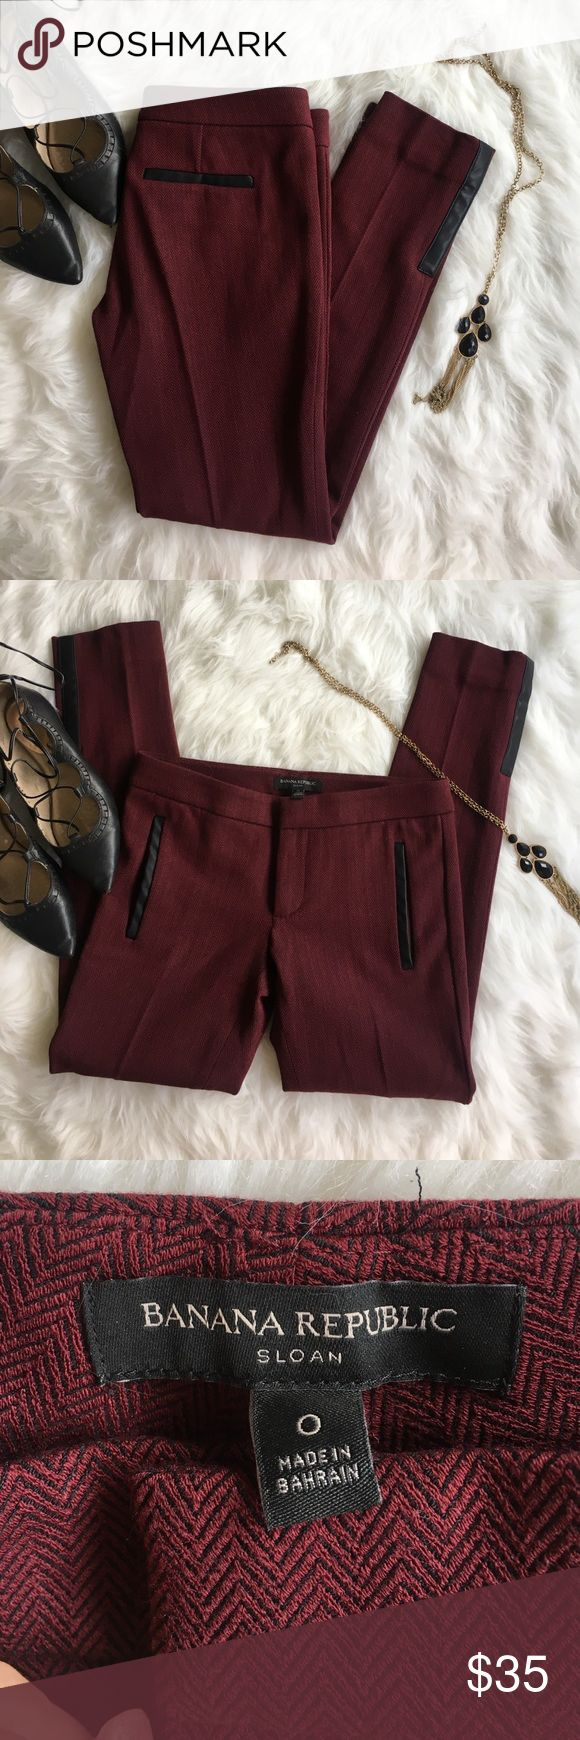 Banana Republic Sloan slim ankle pants Deep wine and black slim fit ankle slacks with leather details. In absolute perfect condition, and perfect for trendy business attire! From a smoke free home! Banana Republic Pants Skinny